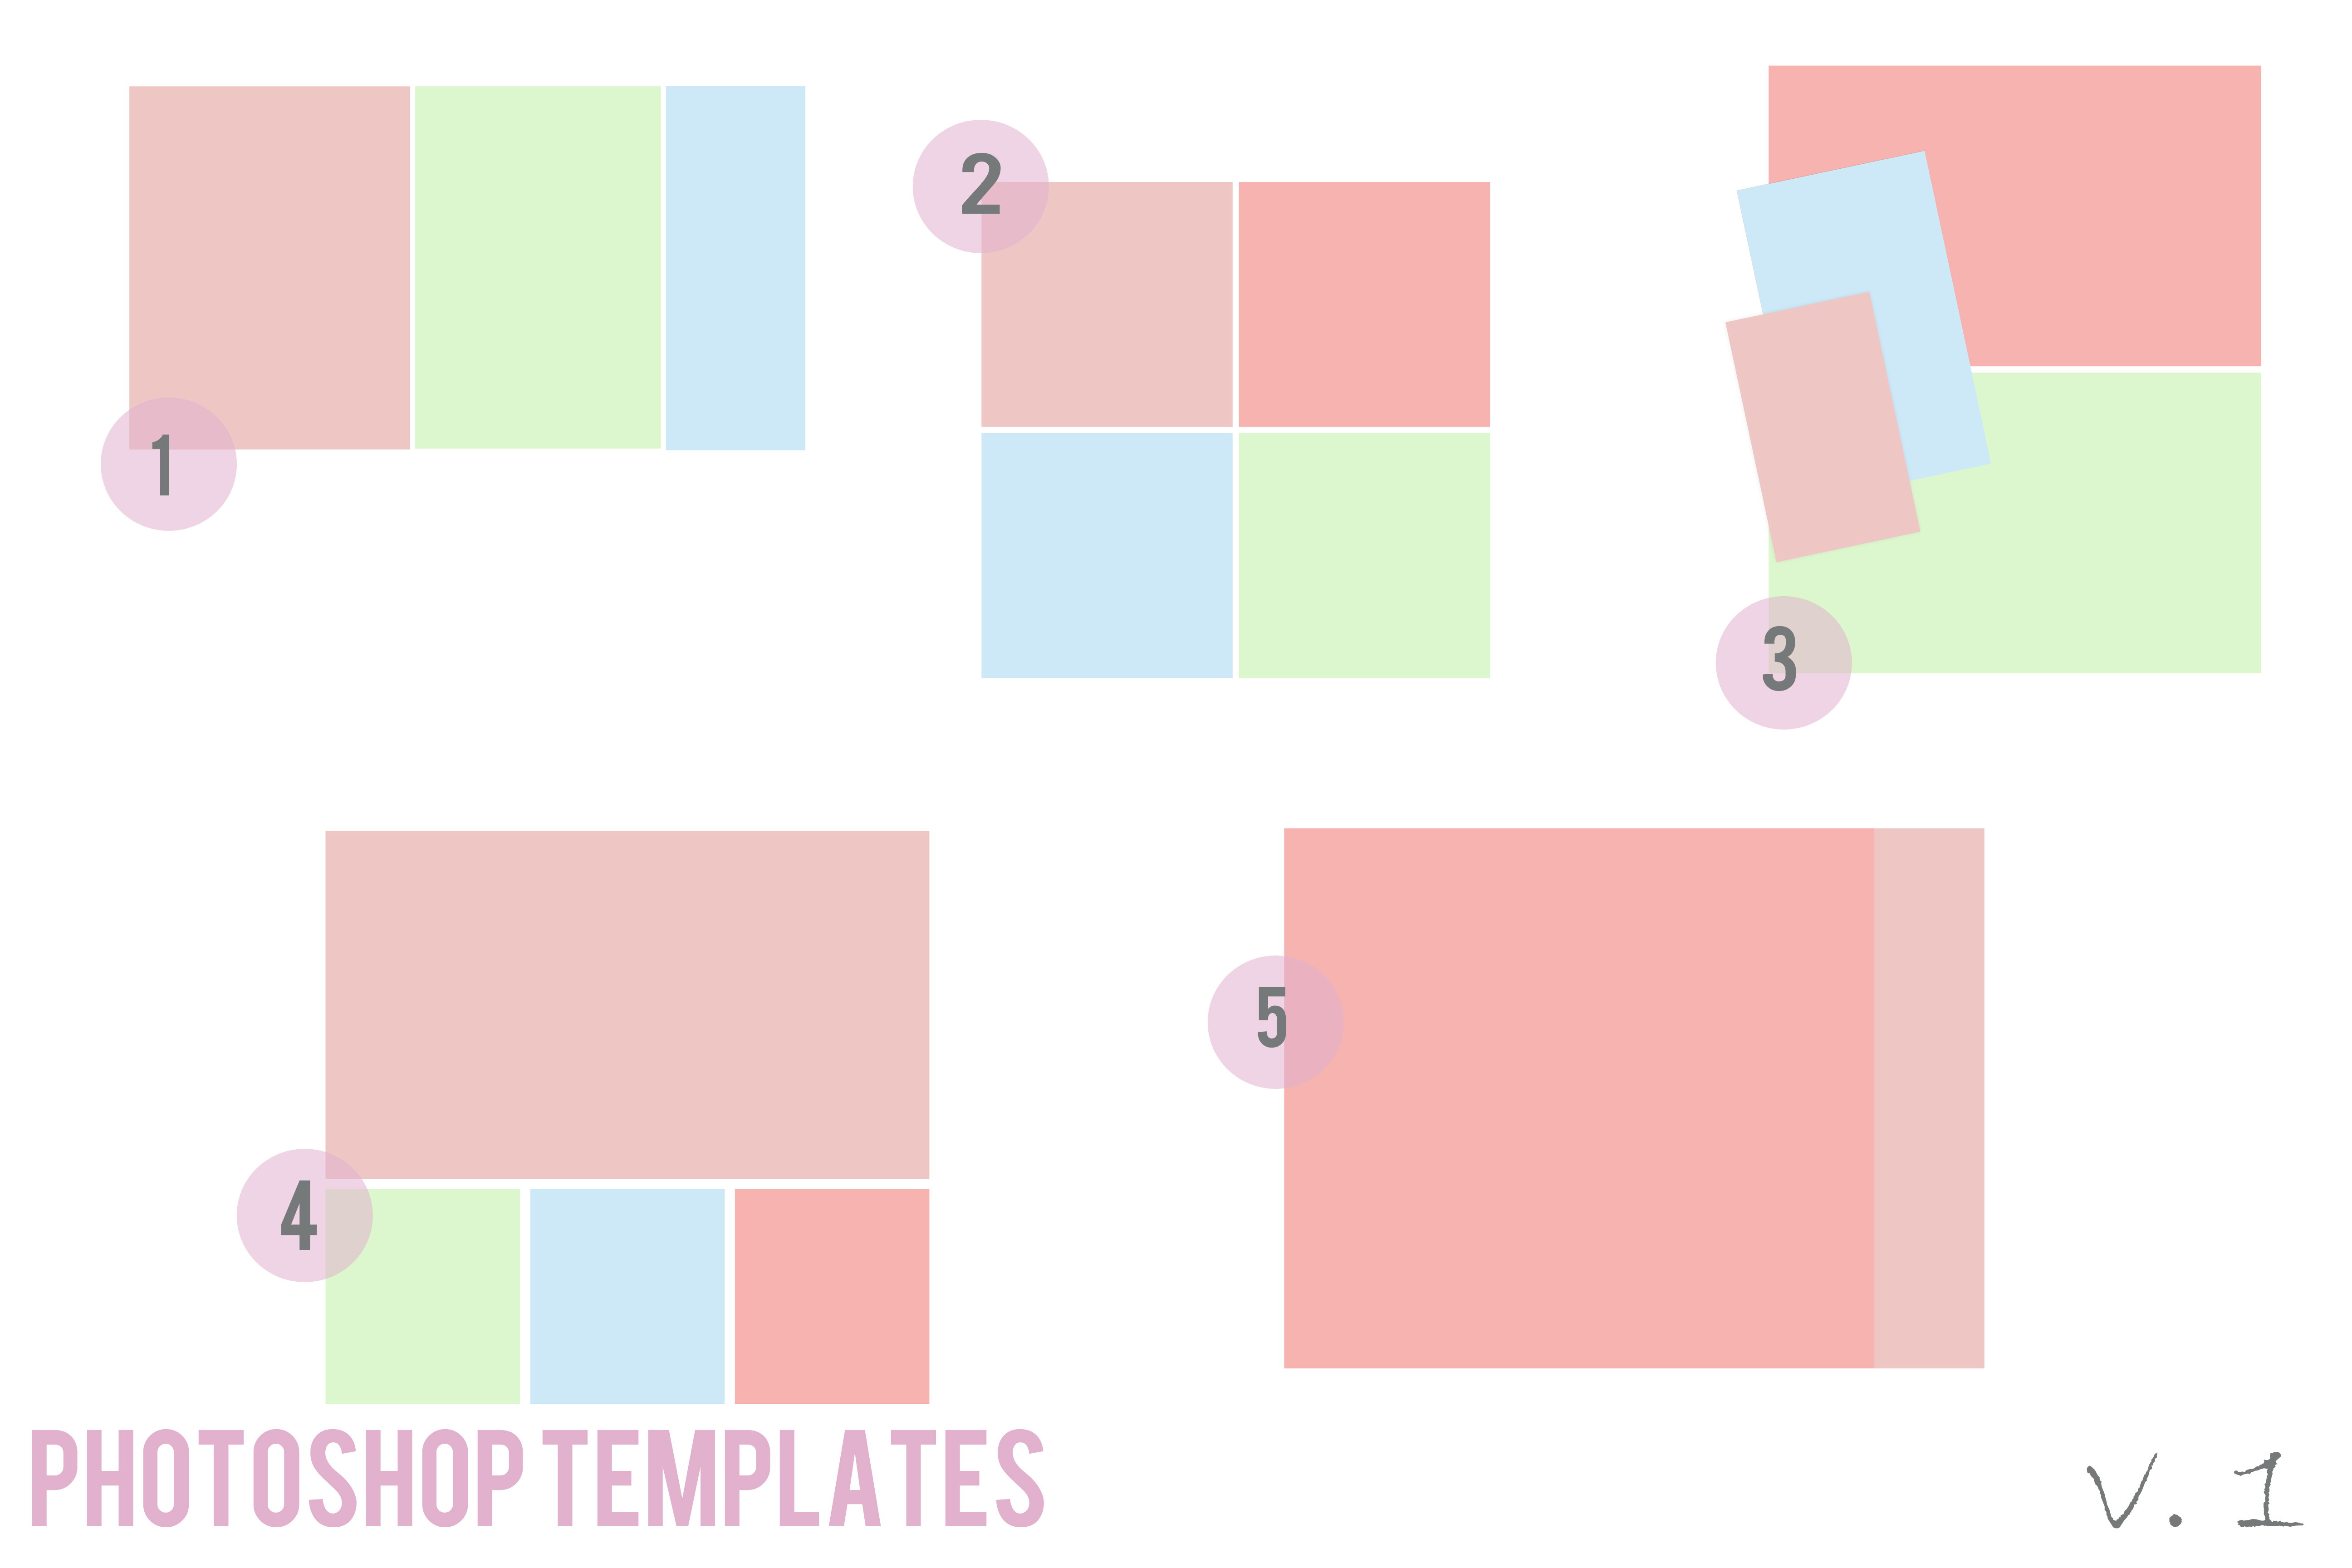 Photoshop Templates: Free Photoshop Templates